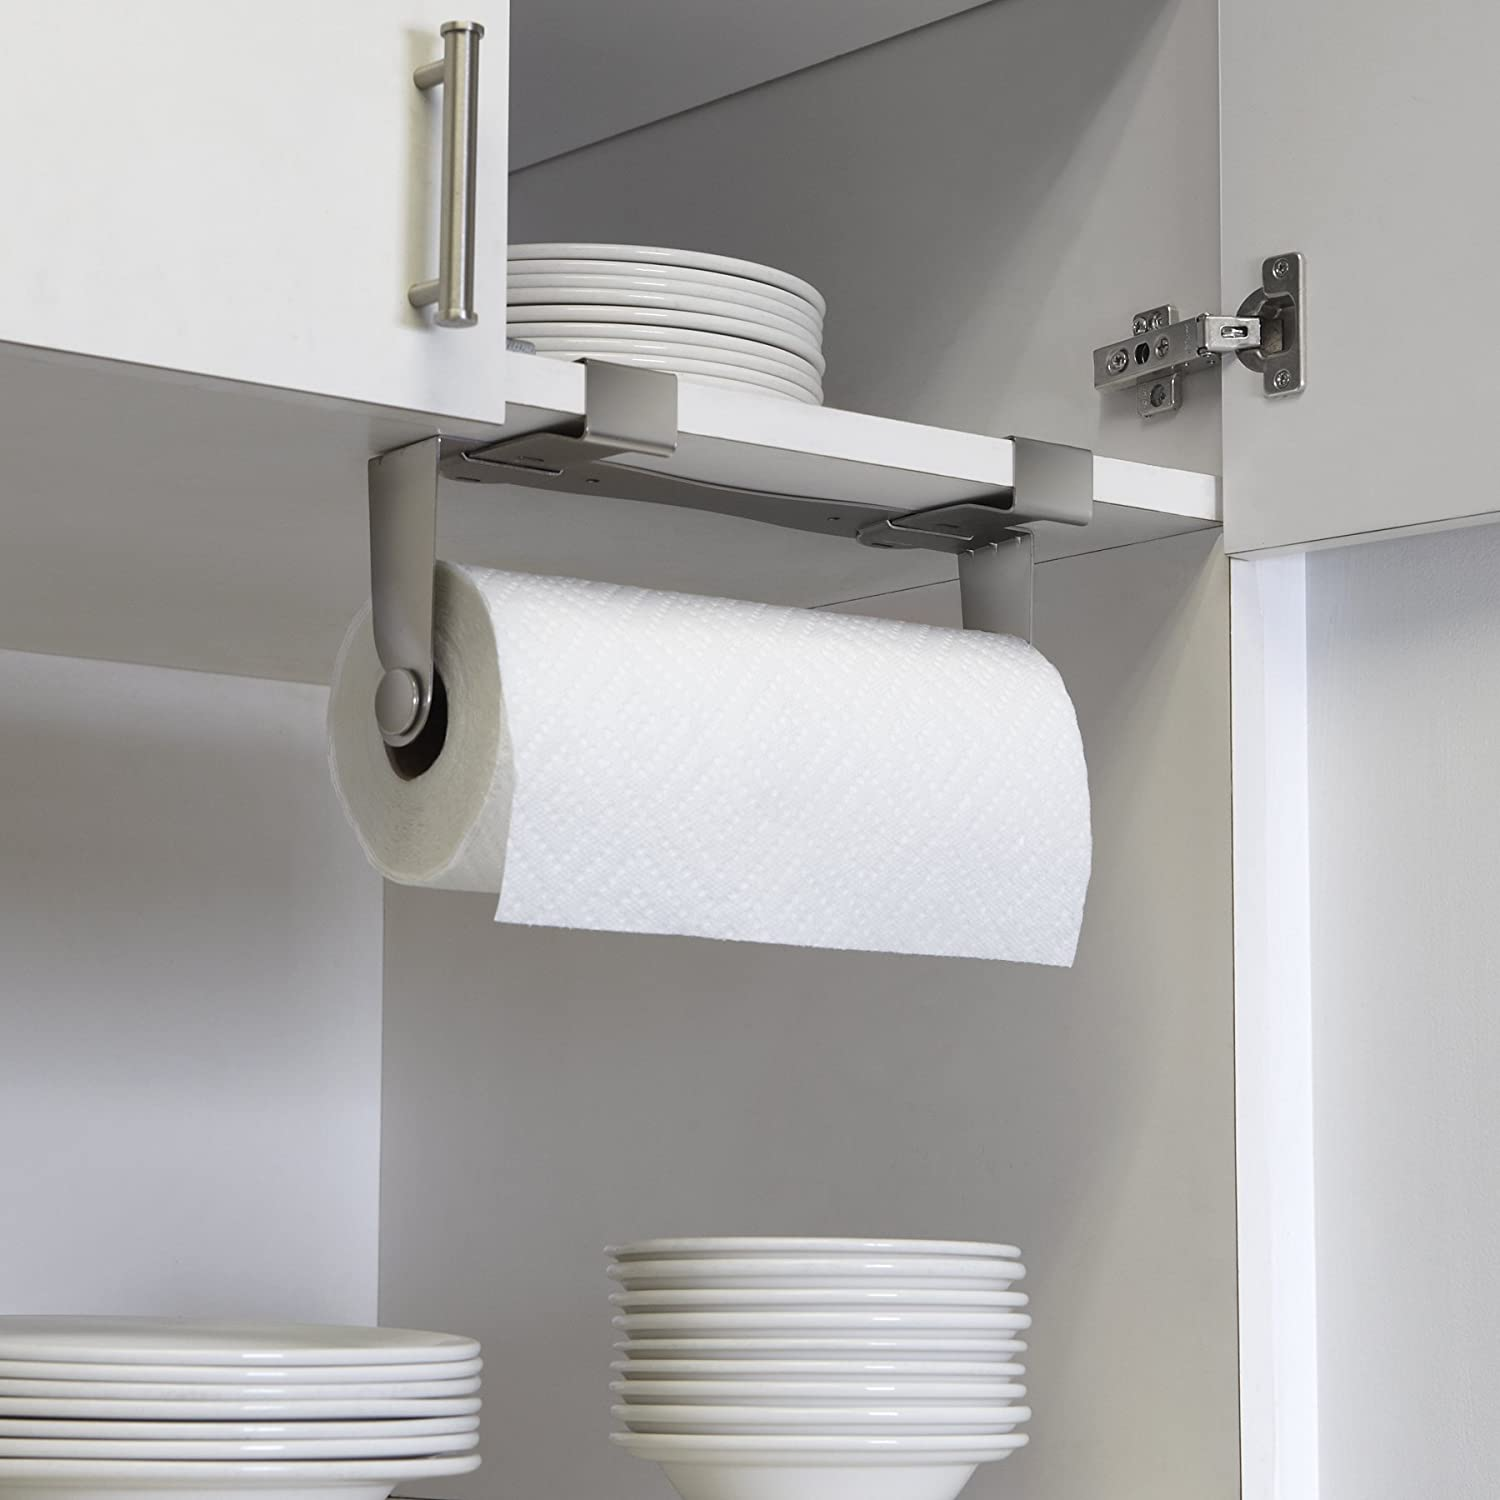 Charmant Amazon.com: Umbra Mountie Cabinet Mount Paper Towel Holder U2013 Modern,  Versatile Nickel Plated Kitchen Paper Towel   Offers Three Easy Mounting  Options ...